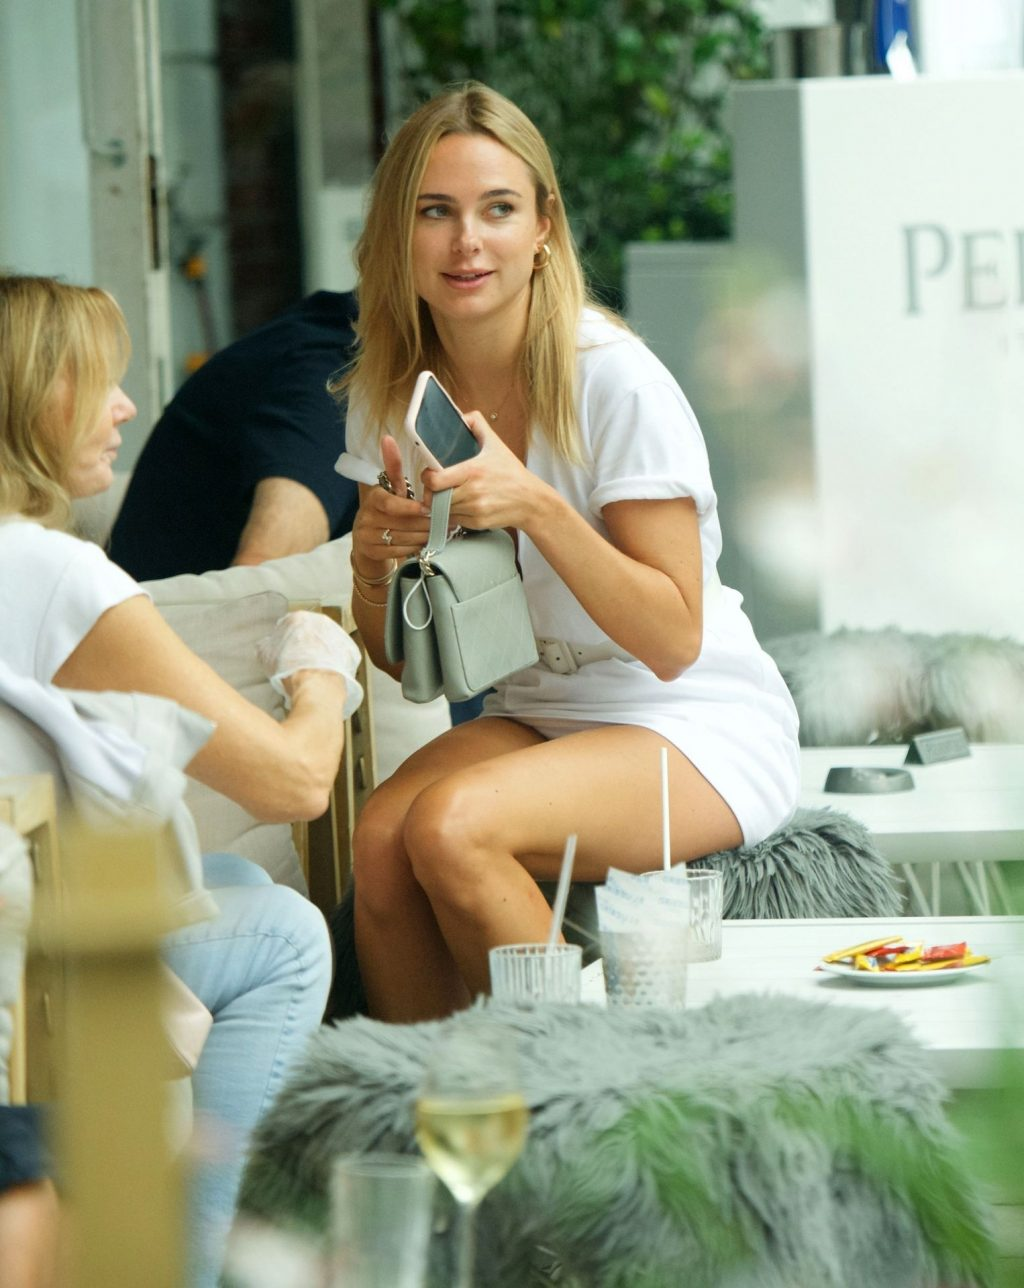 Kimberley Garner Shows Her Pussy in Chelsea (38 Photos)